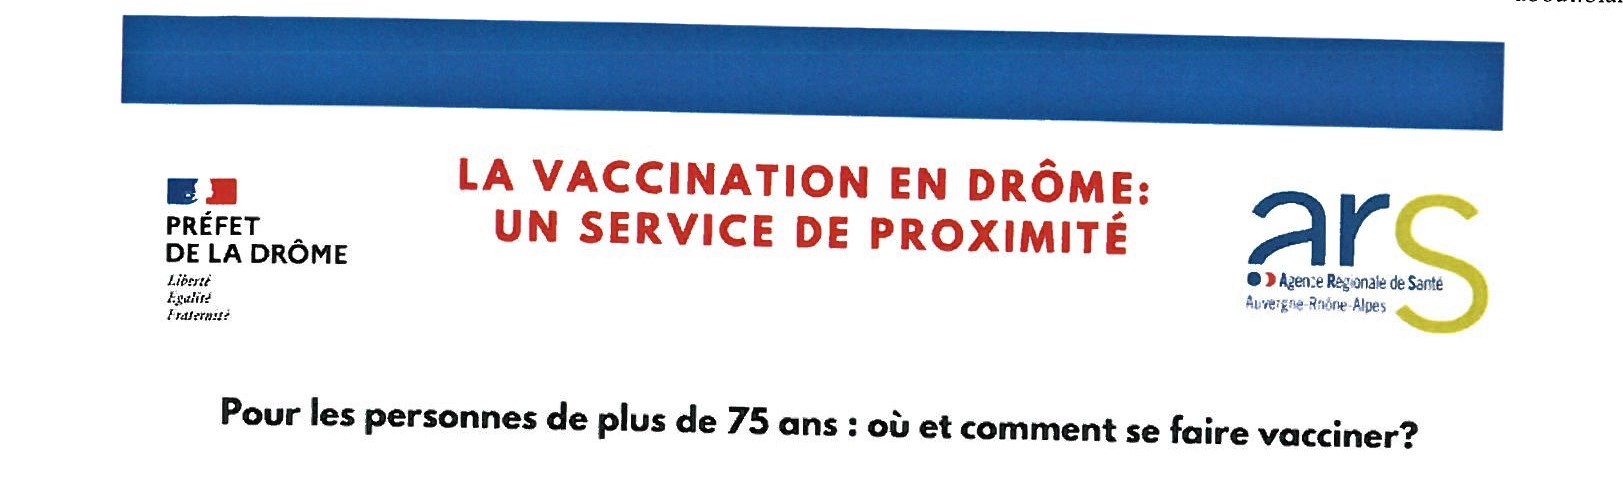 vaccination1